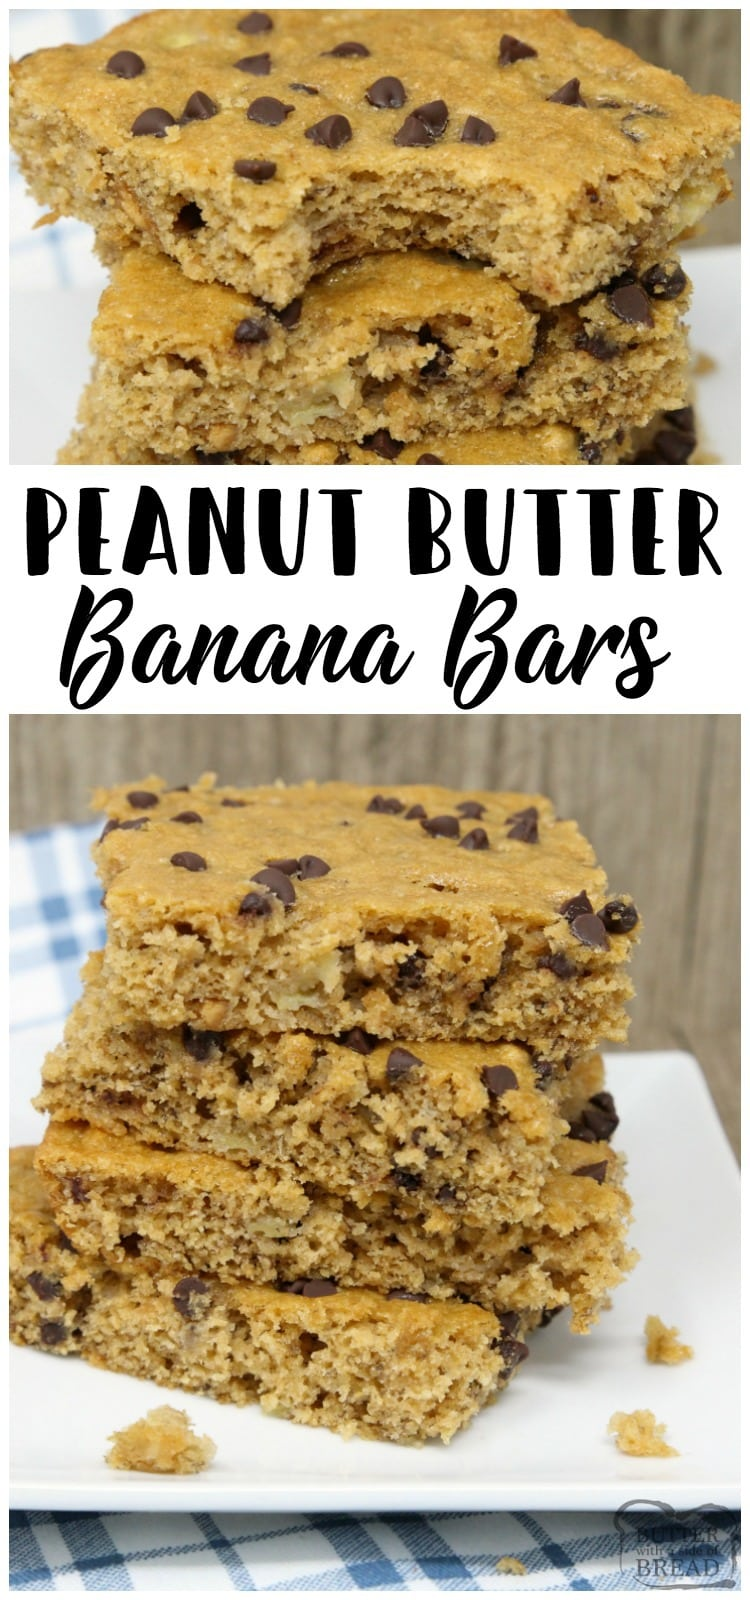 Peanut Butter Banana Bars are packed with bananas, whole wheat flour, peanut butter and chocolate chips. Perfectly sweet, filling & satisfying breakfast, school lunch or snack recipe from Butter With A Side of Bread